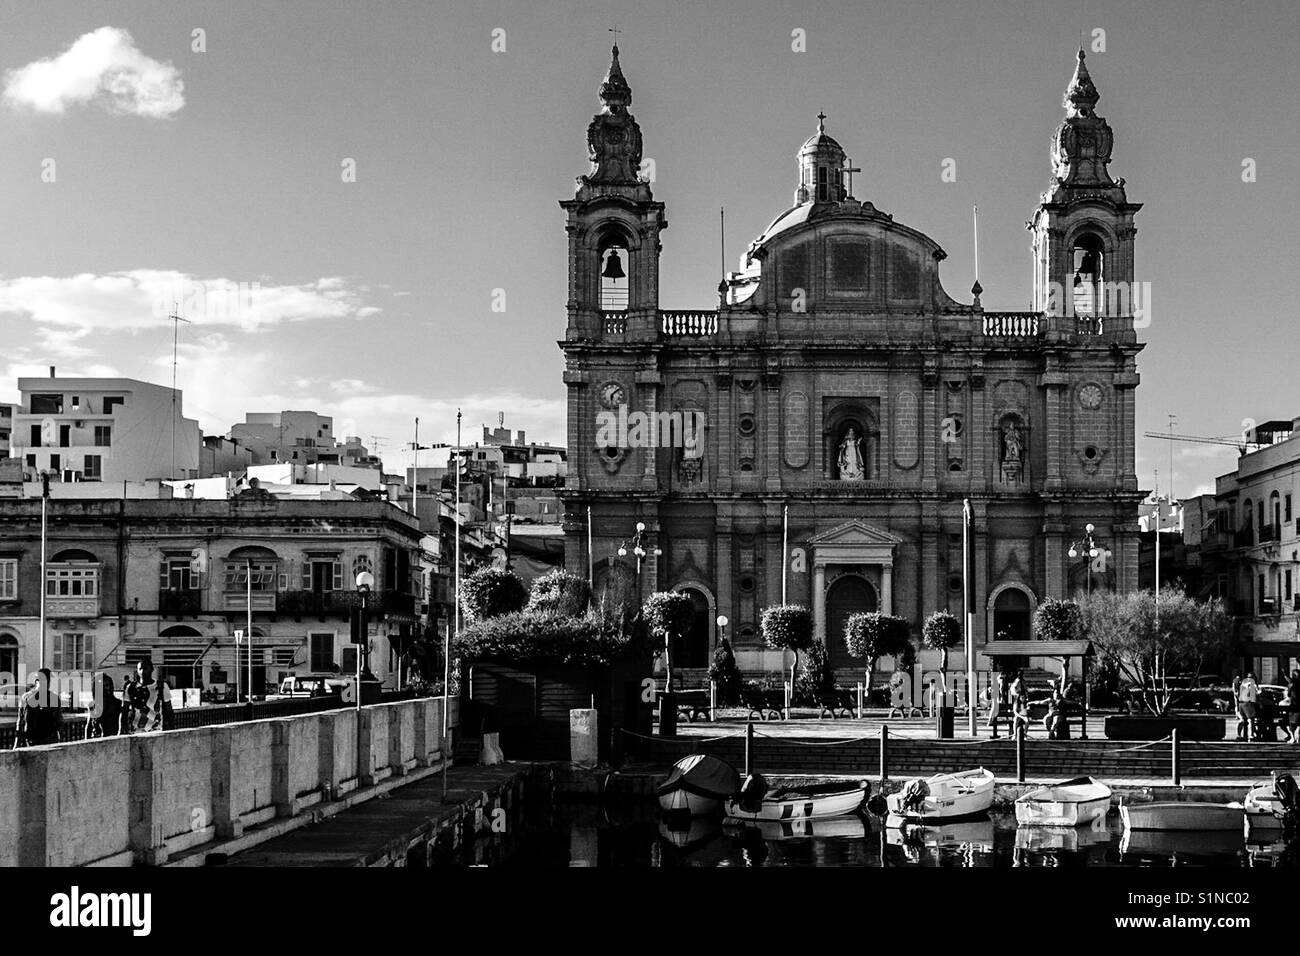 St. Joseph's Church, Msida, Malta, September 2017 Stockbild